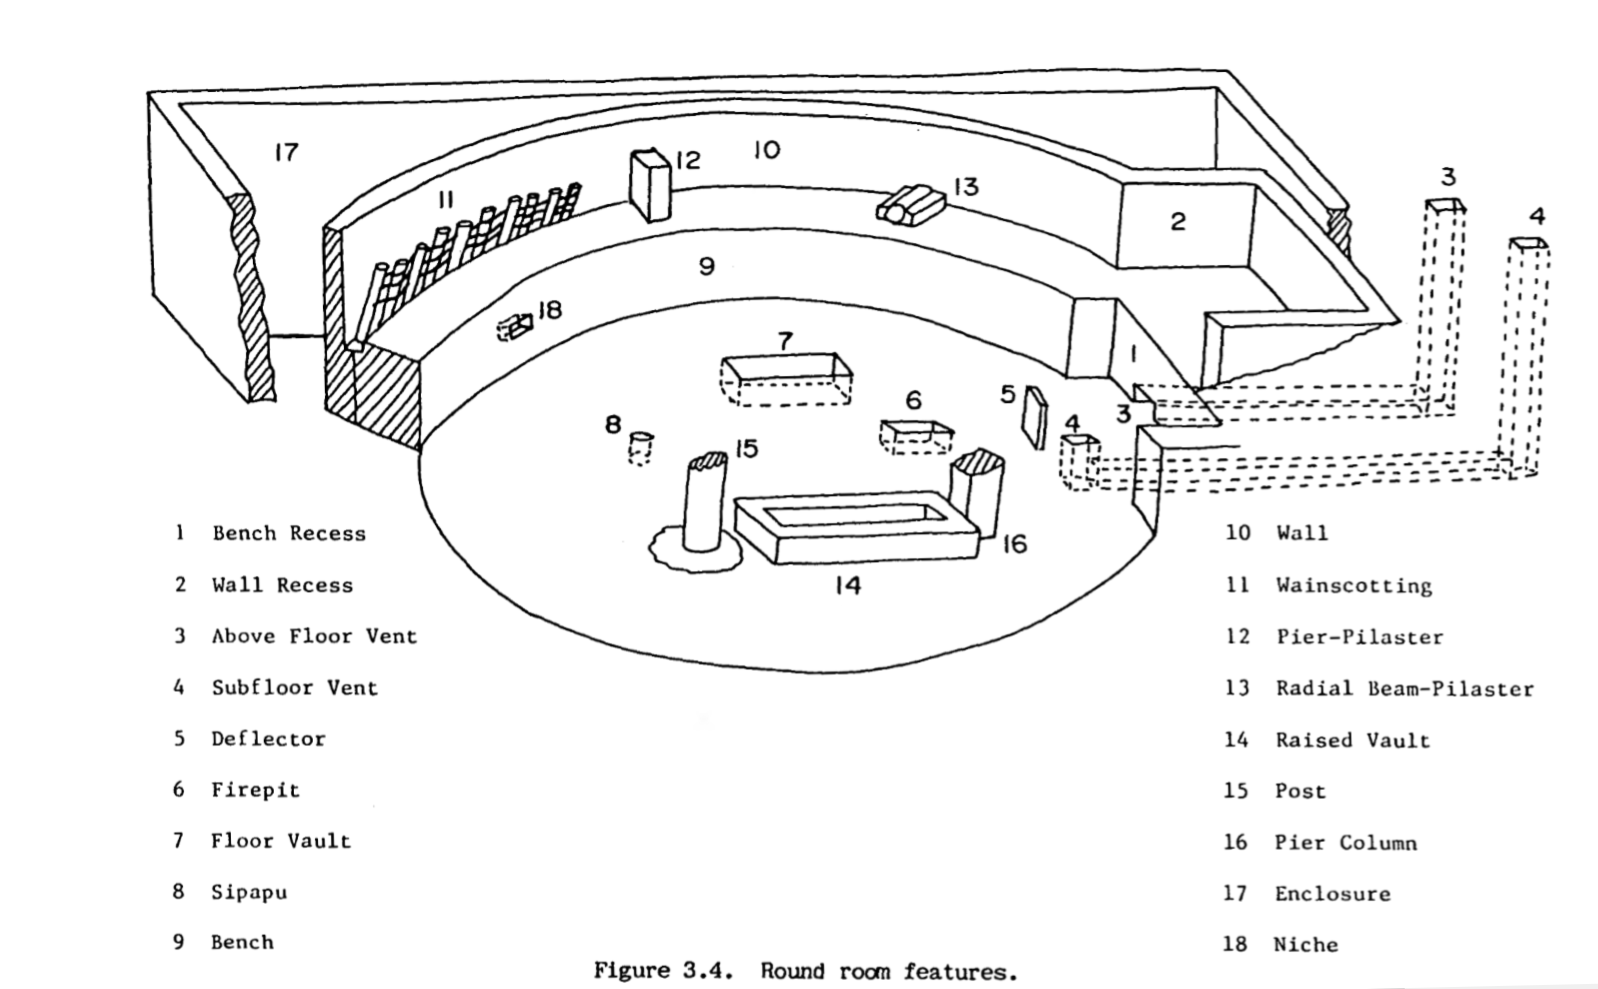 Chacoan round room features